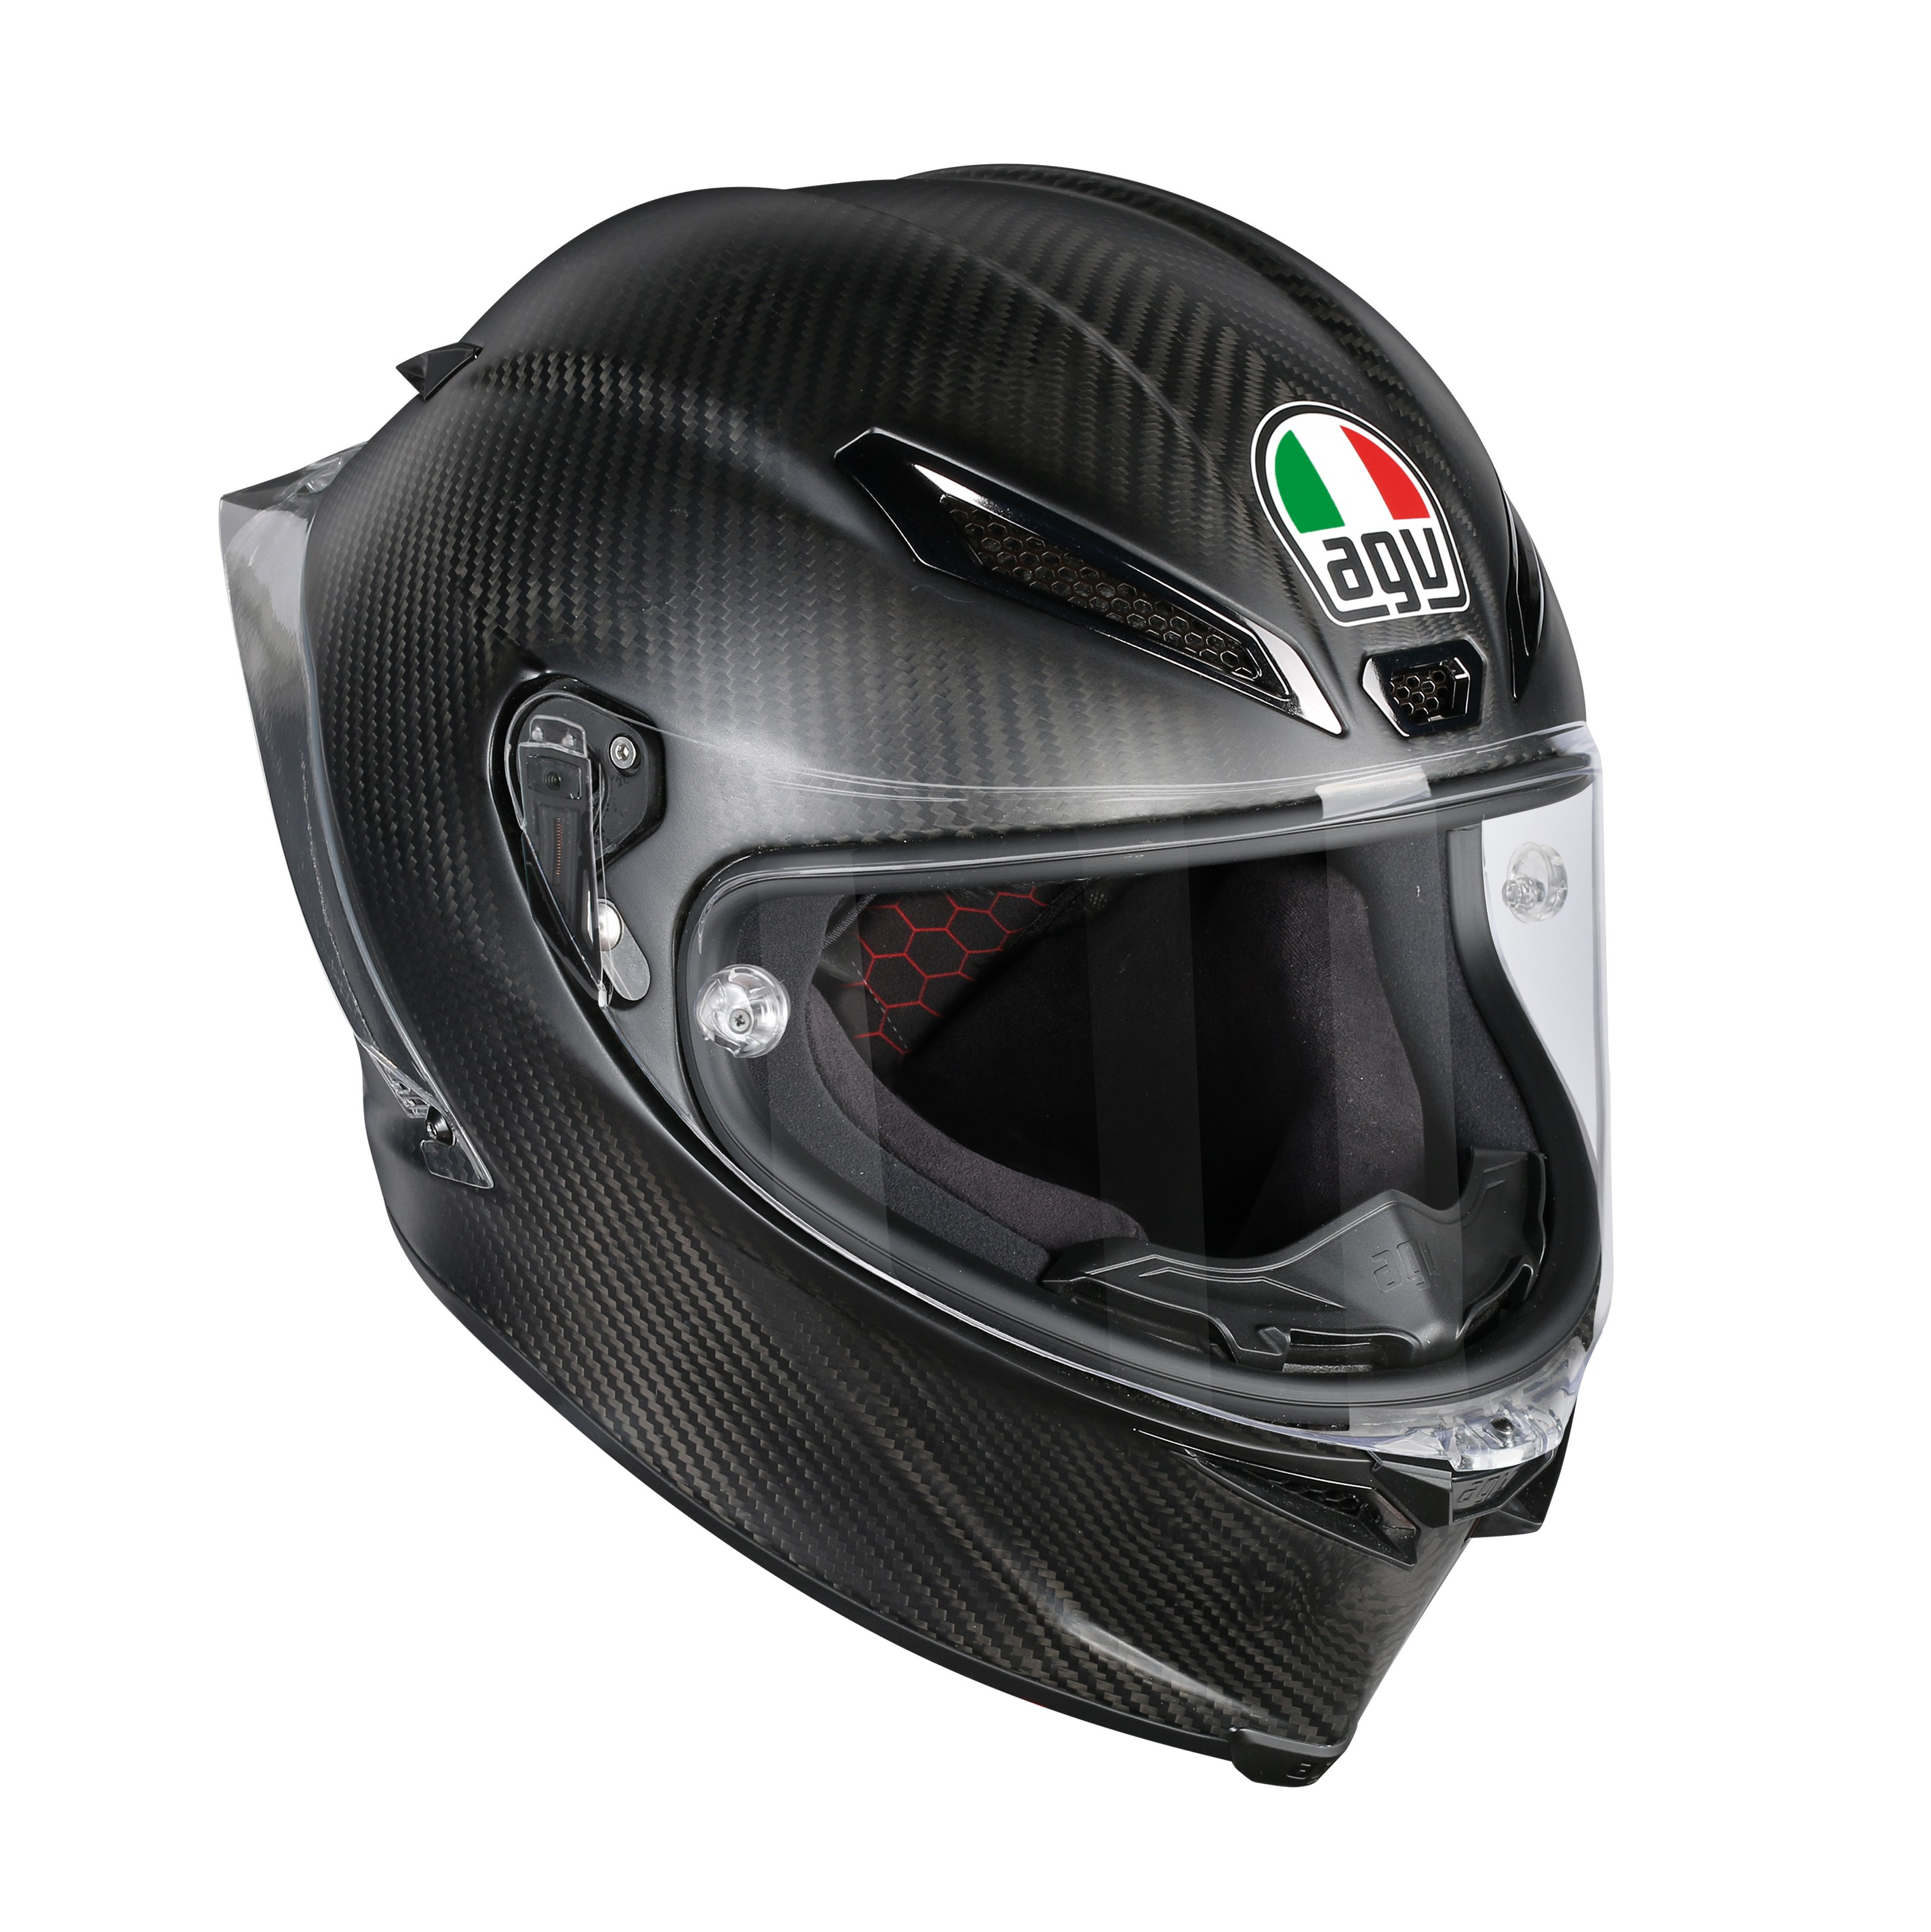 agv pista gp r matt carbon full face carbon helmet. Black Bedroom Furniture Sets. Home Design Ideas